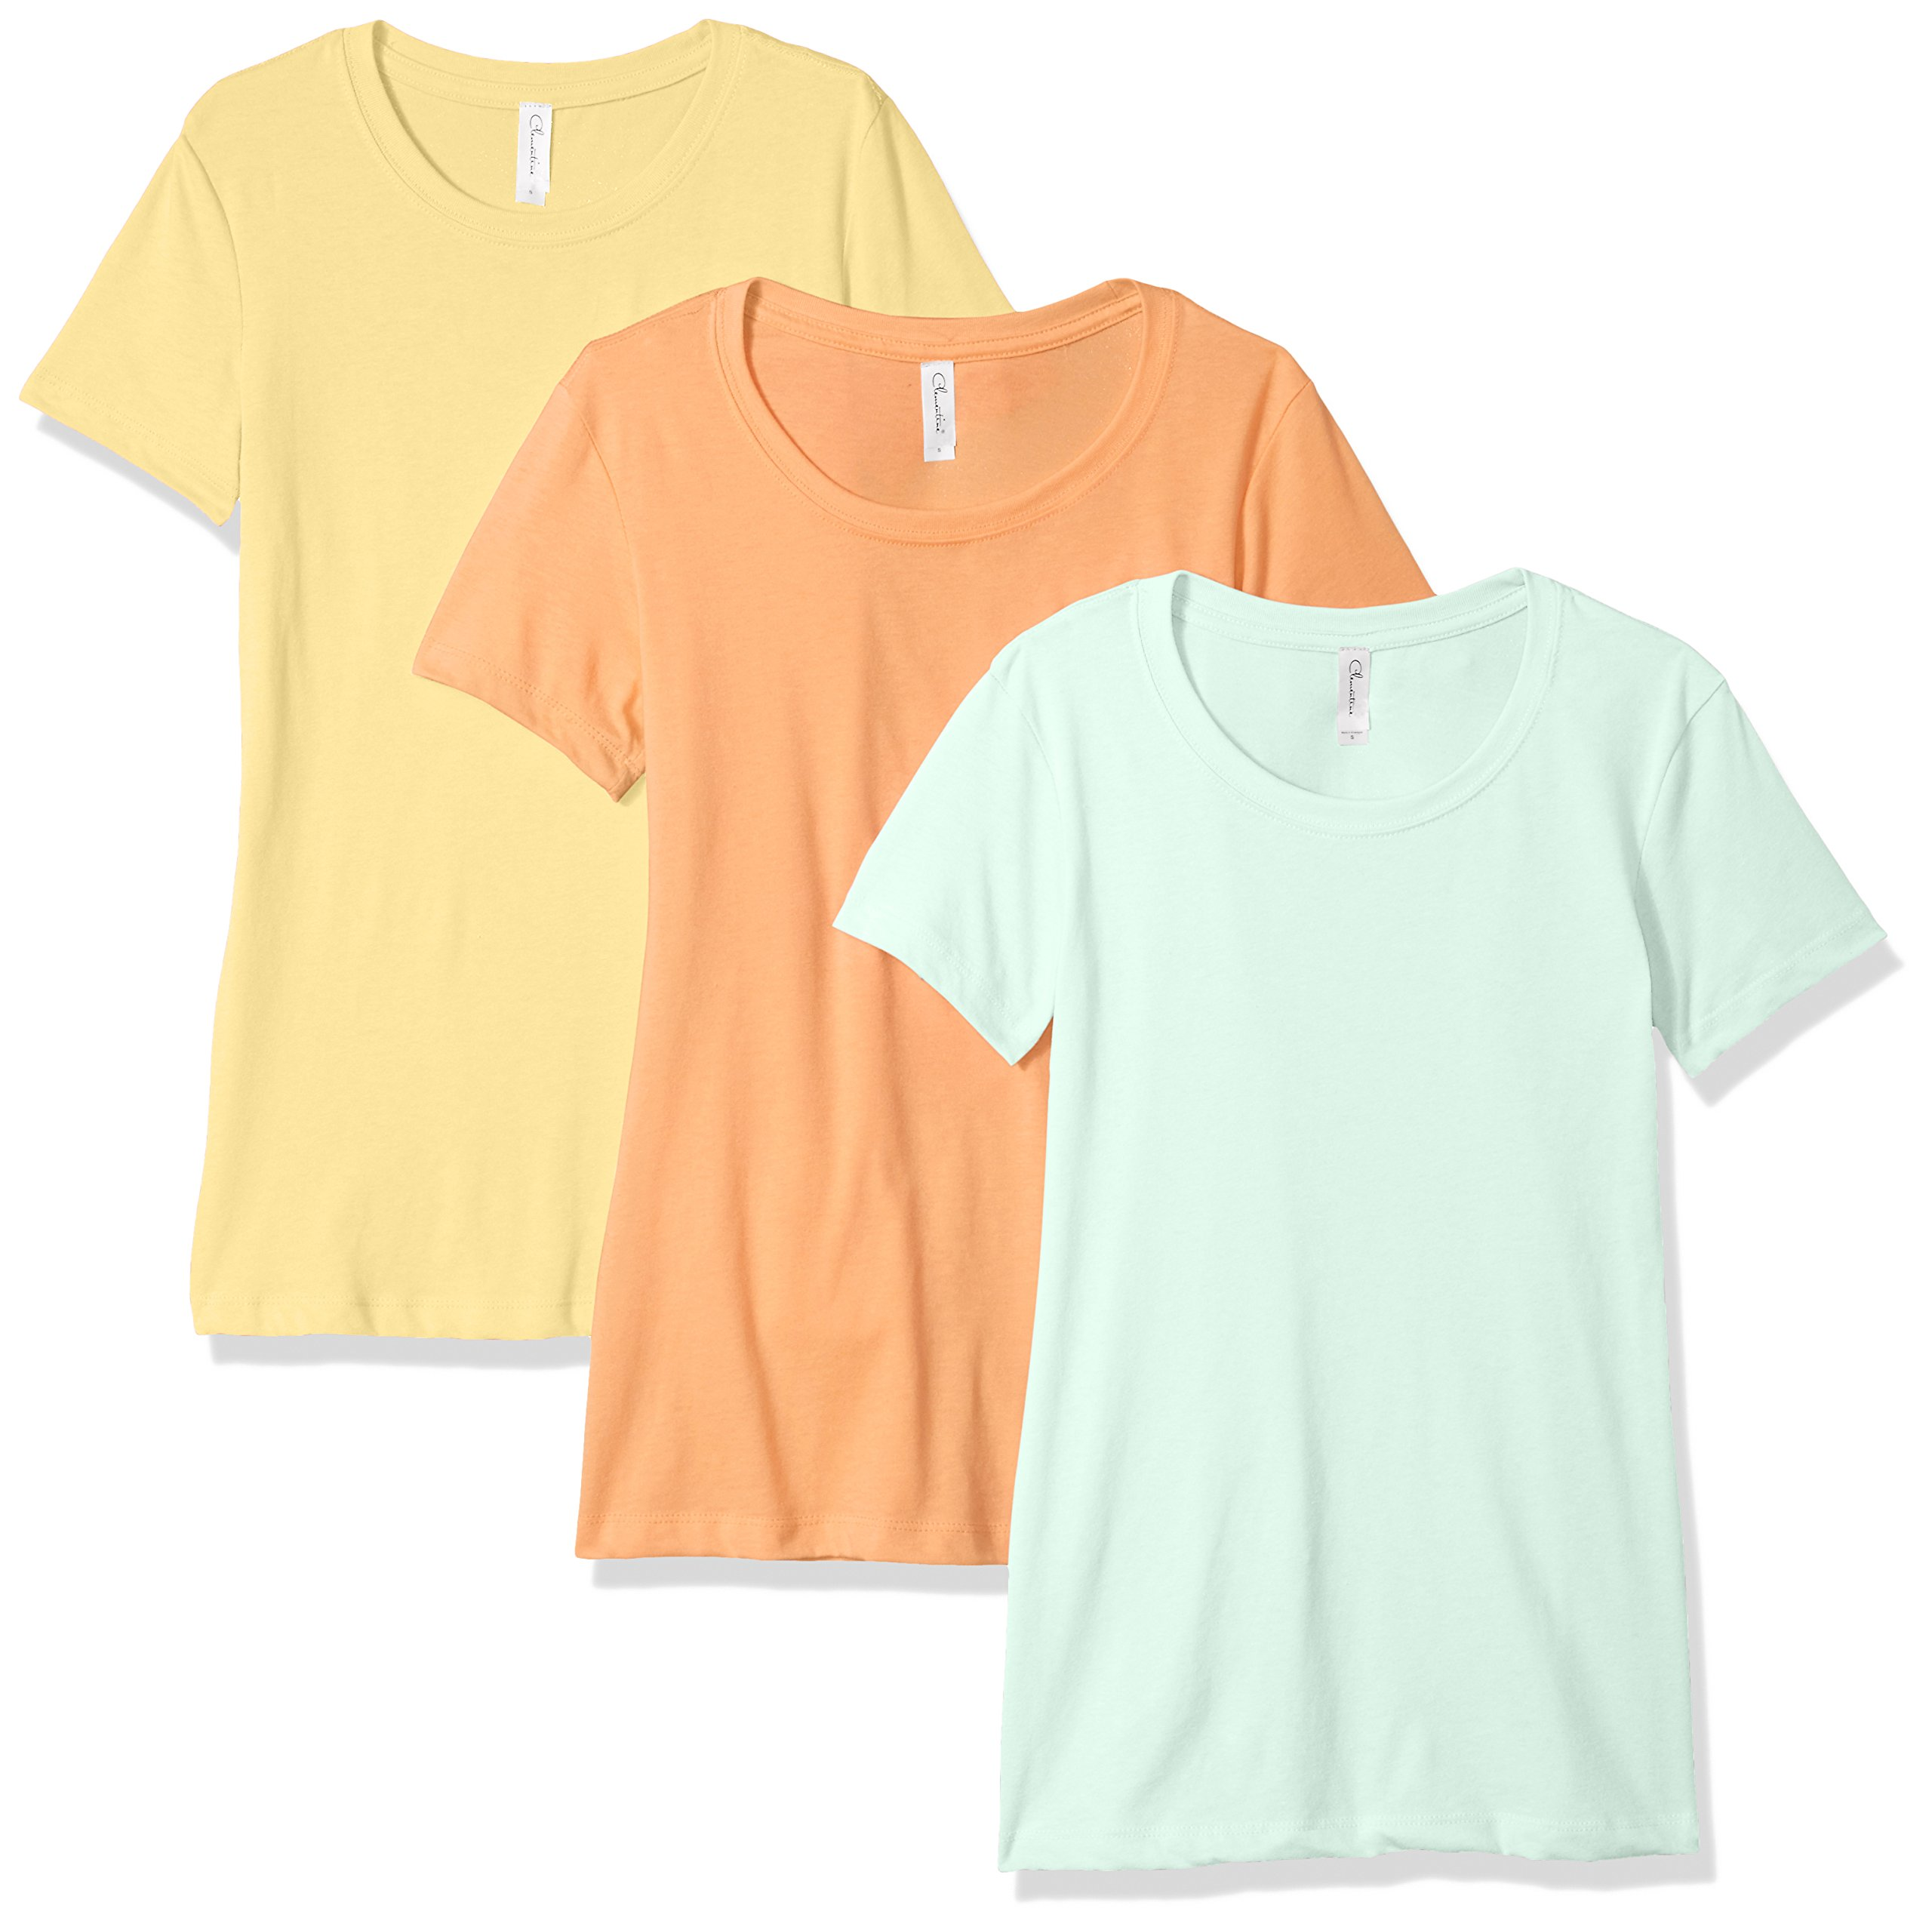 Clementine Apparel Women's Petite Plus Ideal Crew-Neck T-Shirts (Pack of 3), Banana Yellow/Light Orange/Mint, L by Clementine Apparel (Image #1)